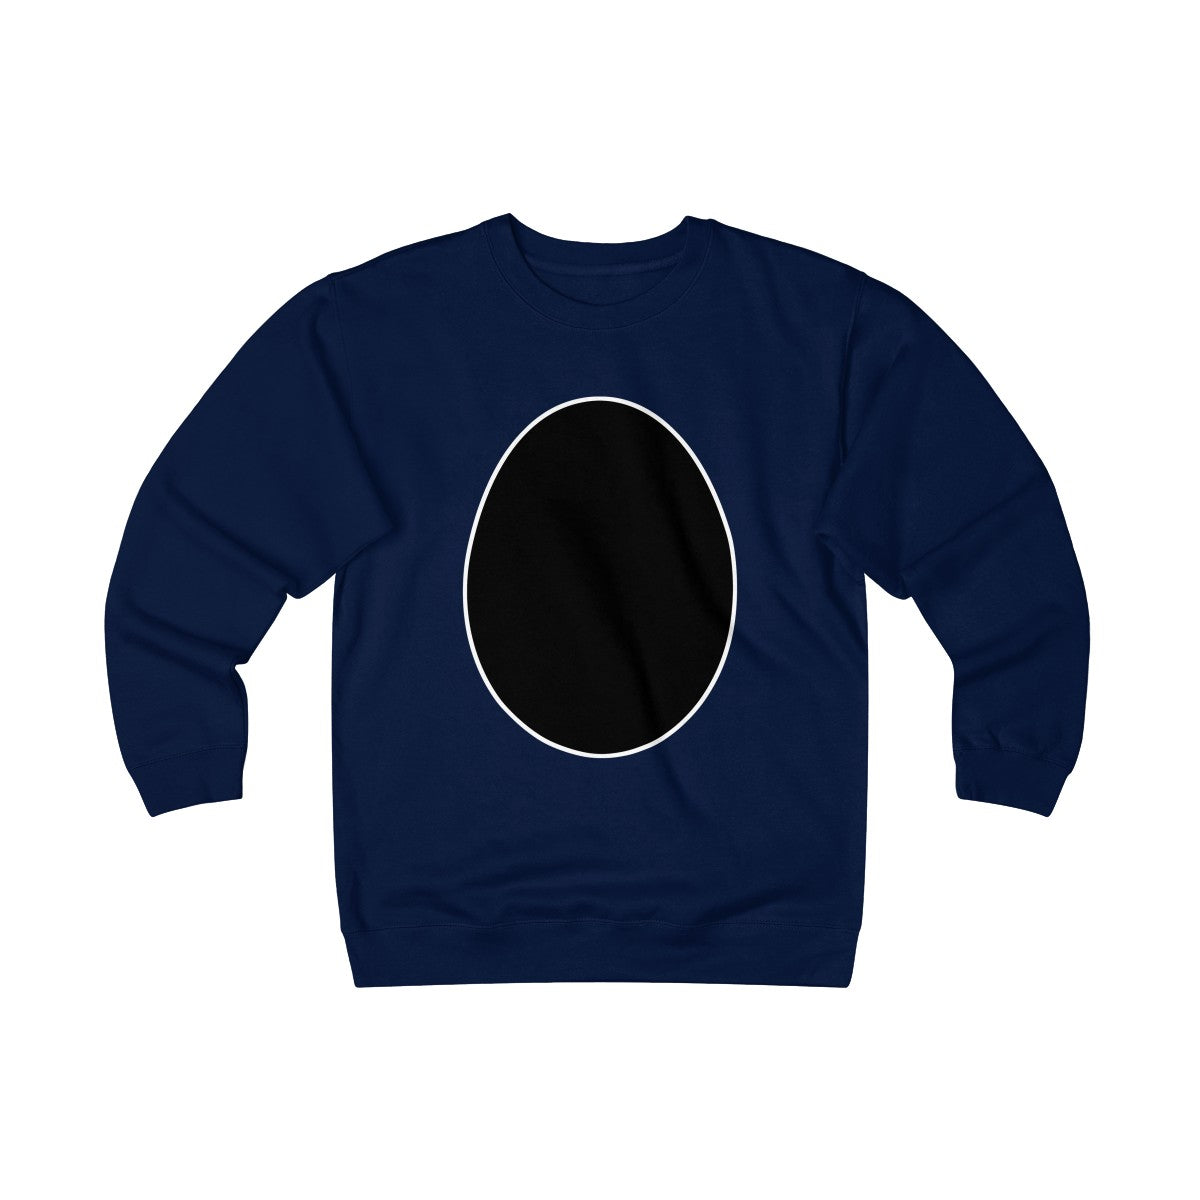 Eggclipse Unisex Sweatshirt Heavyweight Fleece Crew